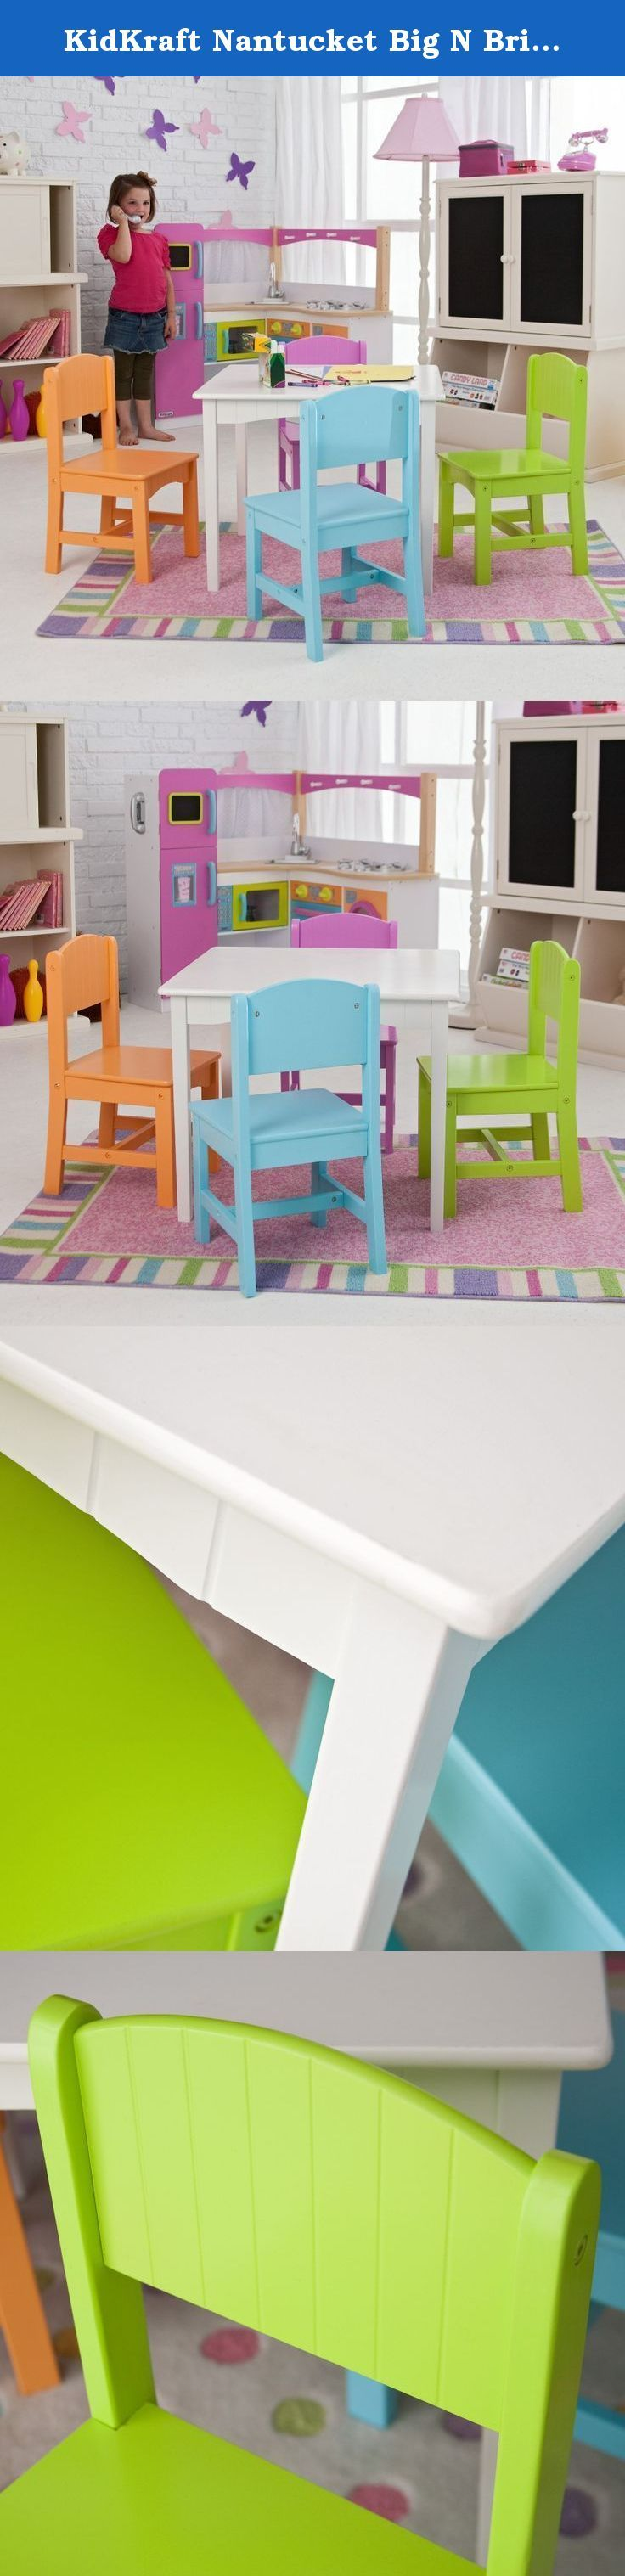 KidKraft Nantucket Big N Bright Table and Chair Set - 26124. Go bold or go home or go bold at home with the KidKraft Nantucket Big N Bright Table and Chair Set - 26124. Perfect for board games, arts and crafts, tea parties, and any other activity your playroom may host, this set boasts a classic white table with colorful chairs that practically shout ''play time!'' Each sturdy chair has a Nantucket-style plank back and a wide, comfortable seat. This set is perfectly sized for children 3 to…